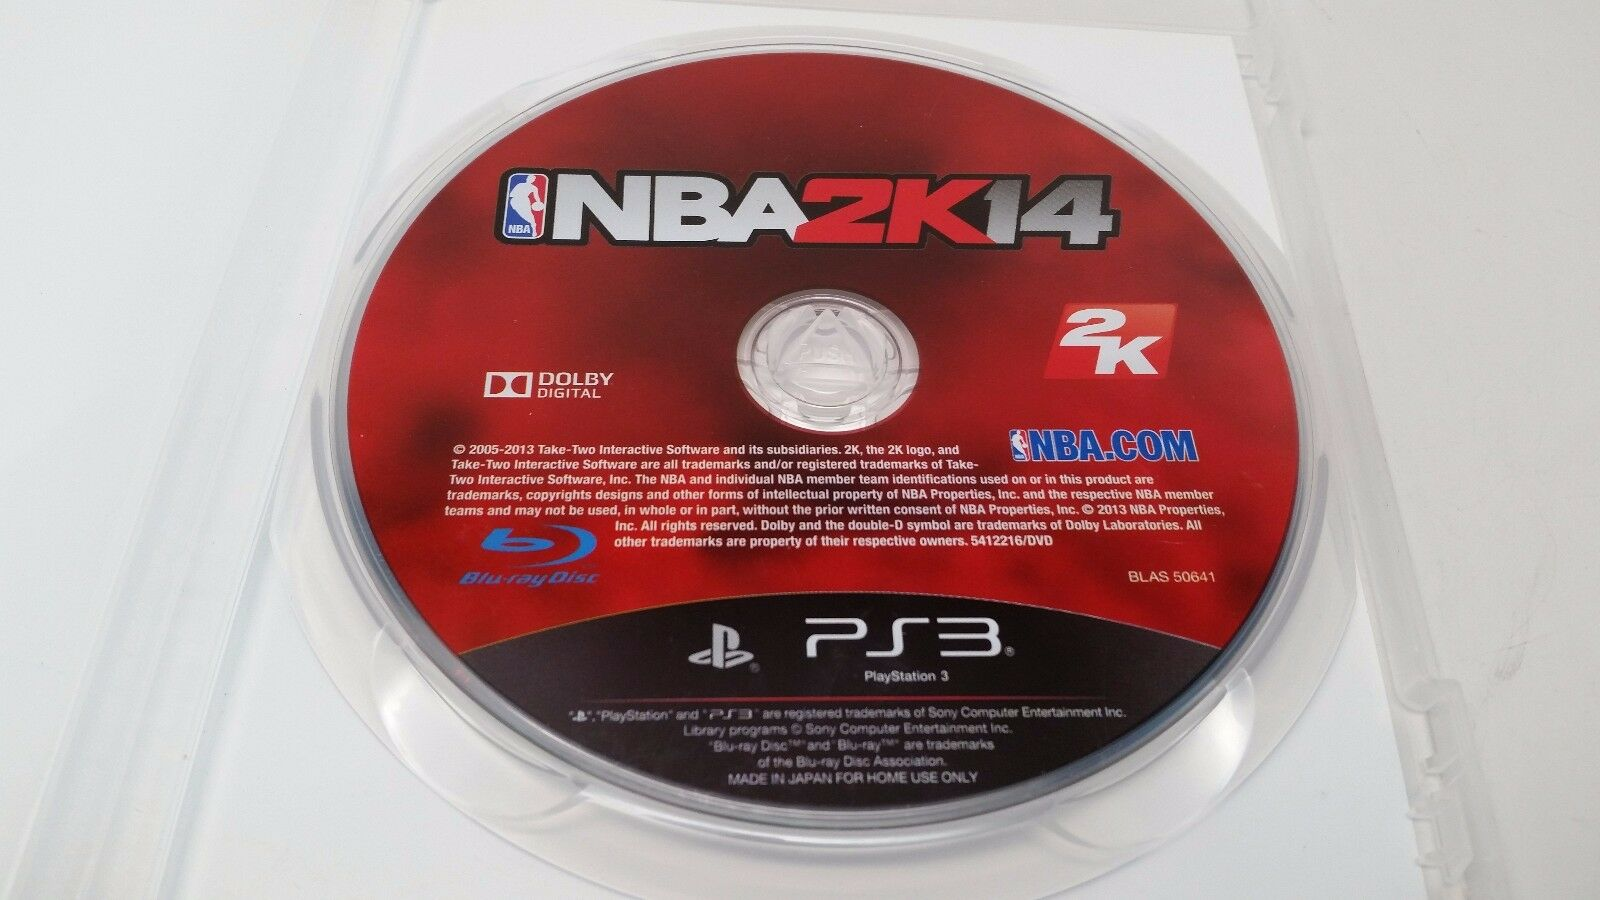 Xbox 360r Gamepad Controller Taken From The Digital Nba 2k14 Manual